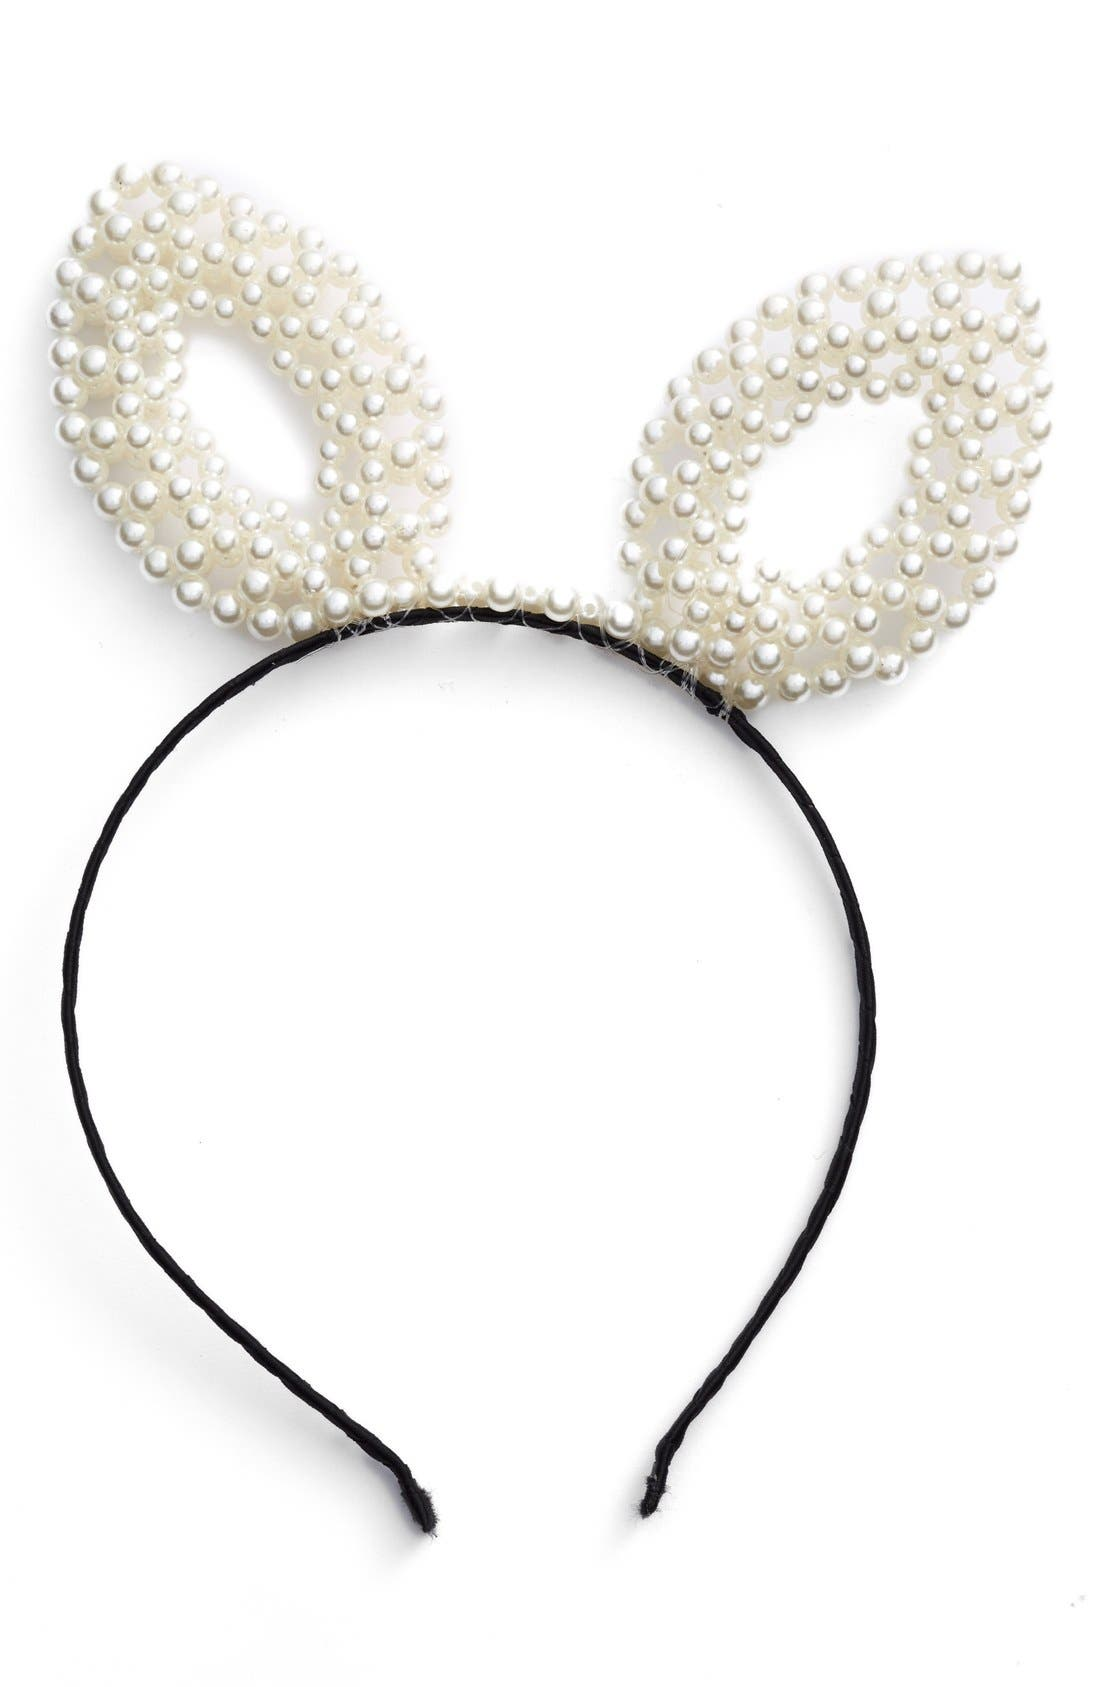 Main Image - BP. Pearly Bunny Ear Headband